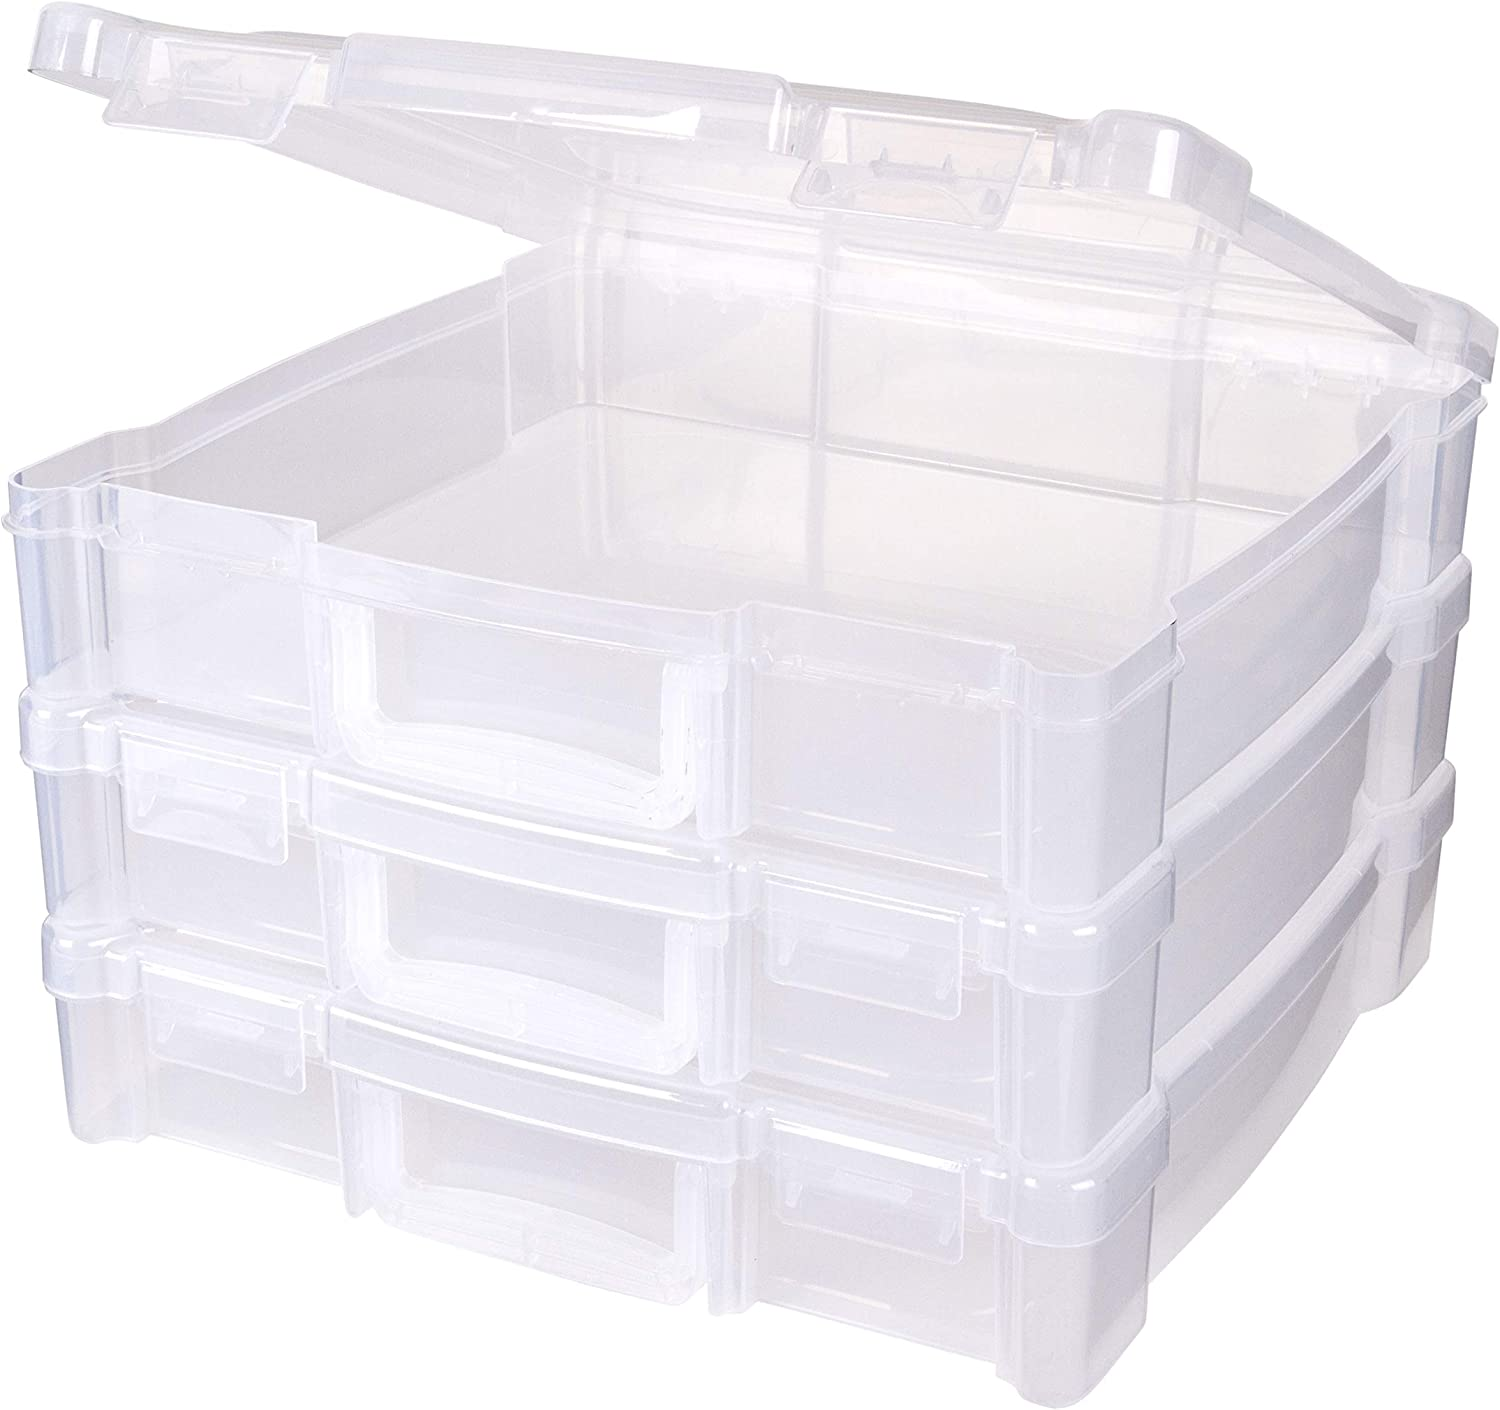 ArtBin Storage Box with Handle, 3 Pack